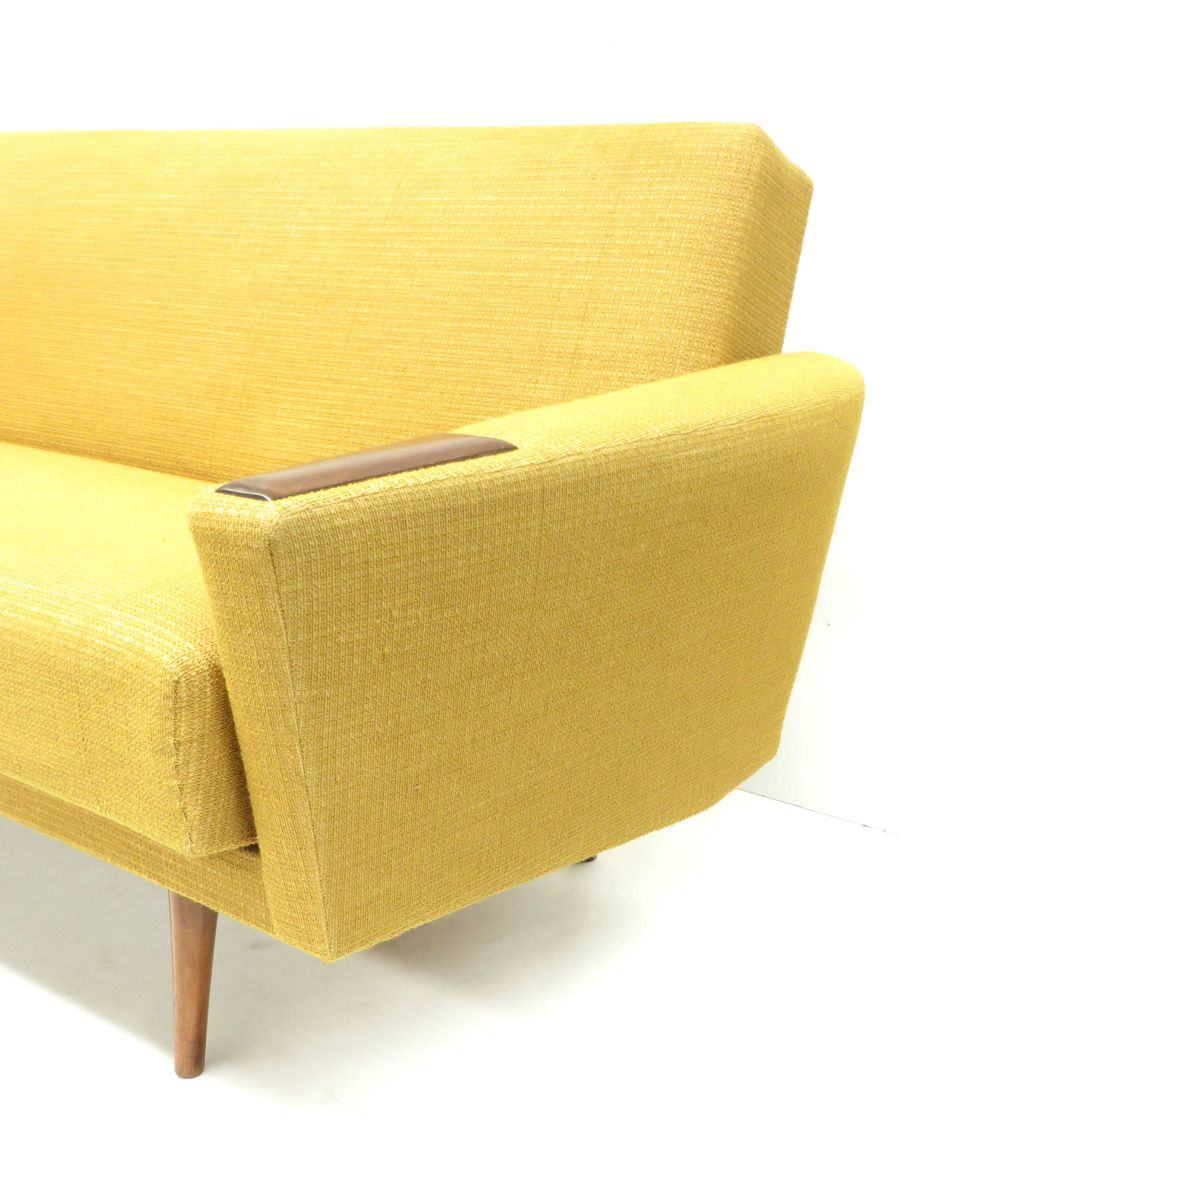 Vintage Yellow Sofa Bed 1960s For Sale At Pamono